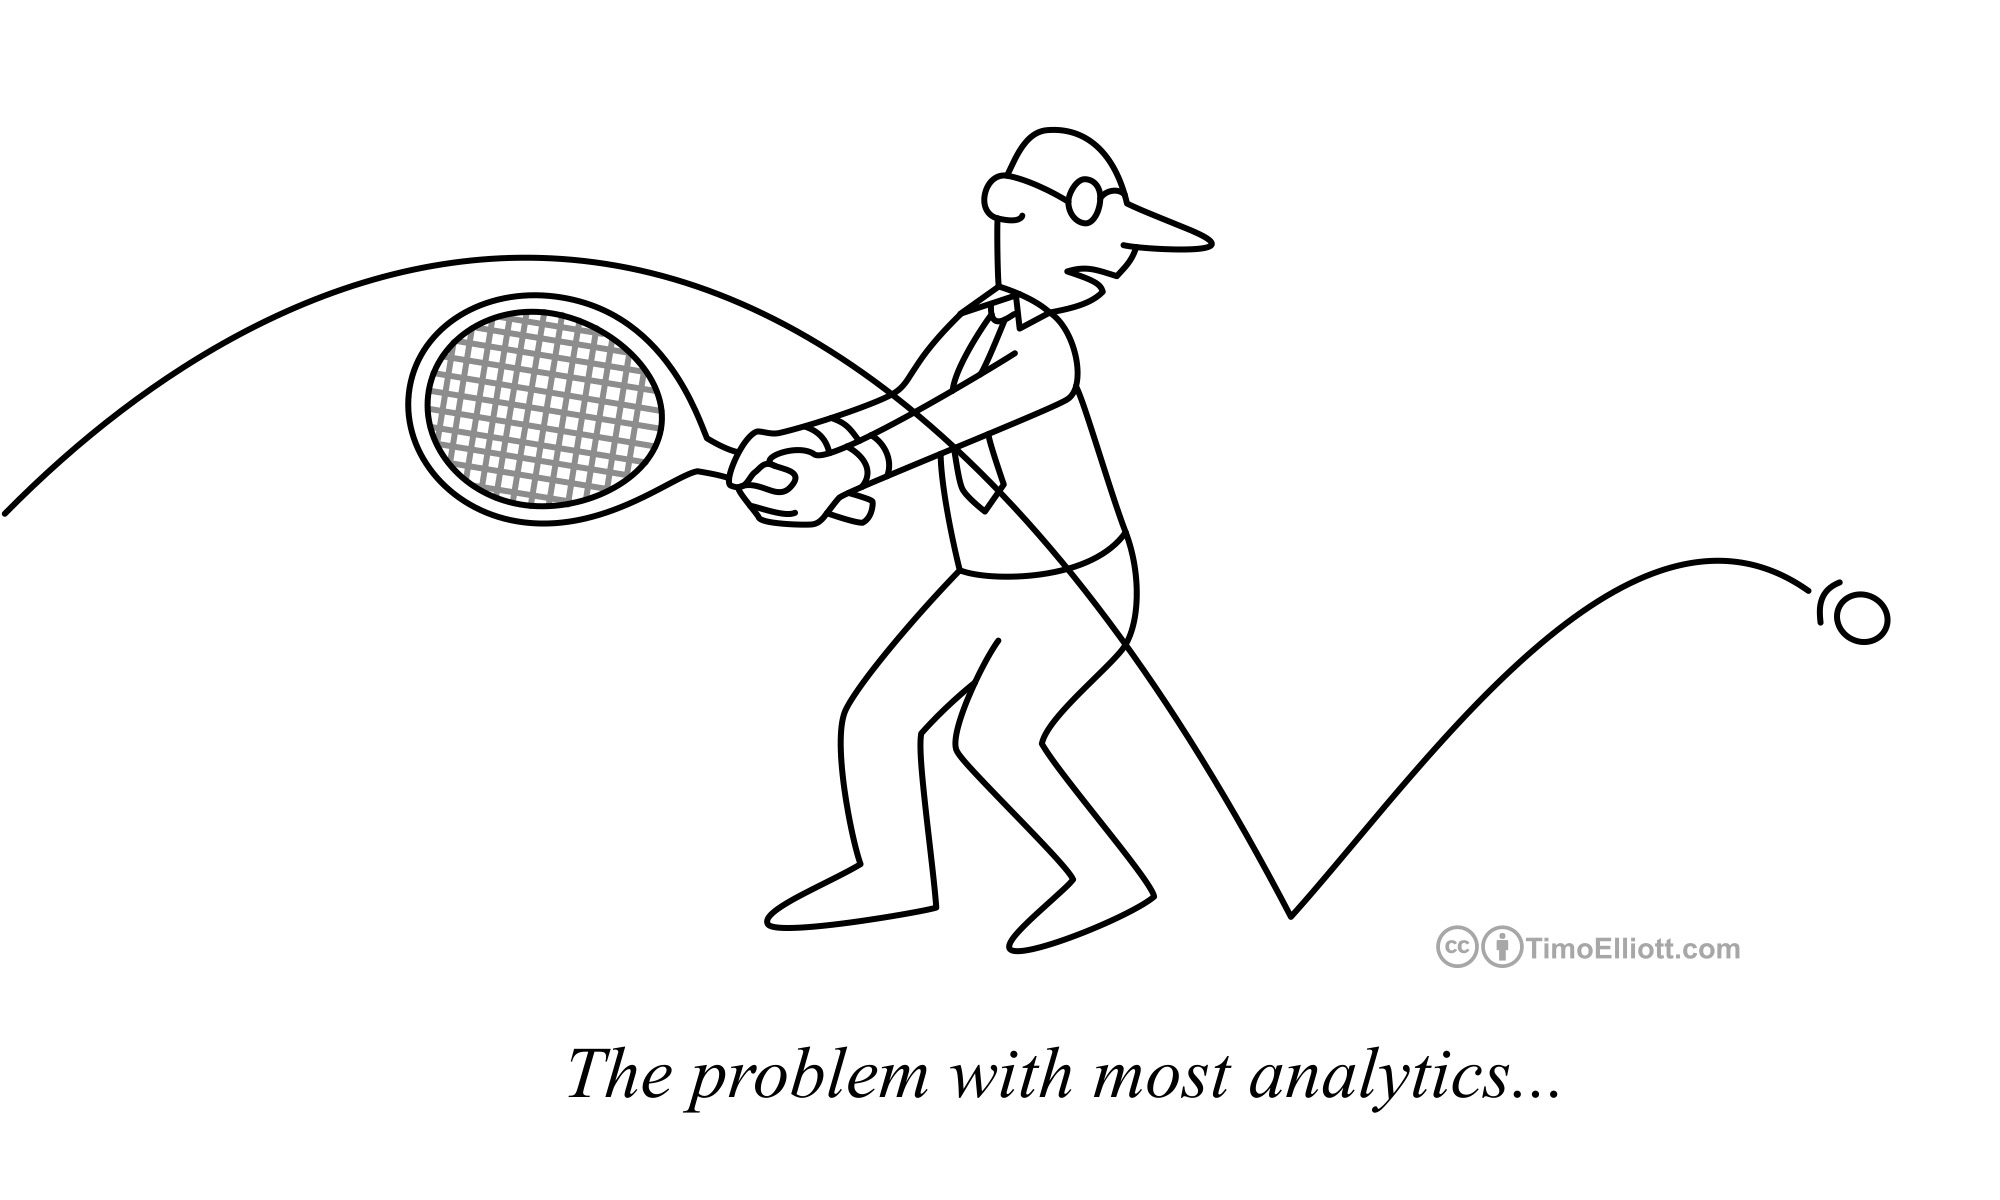 the problem with most analytics